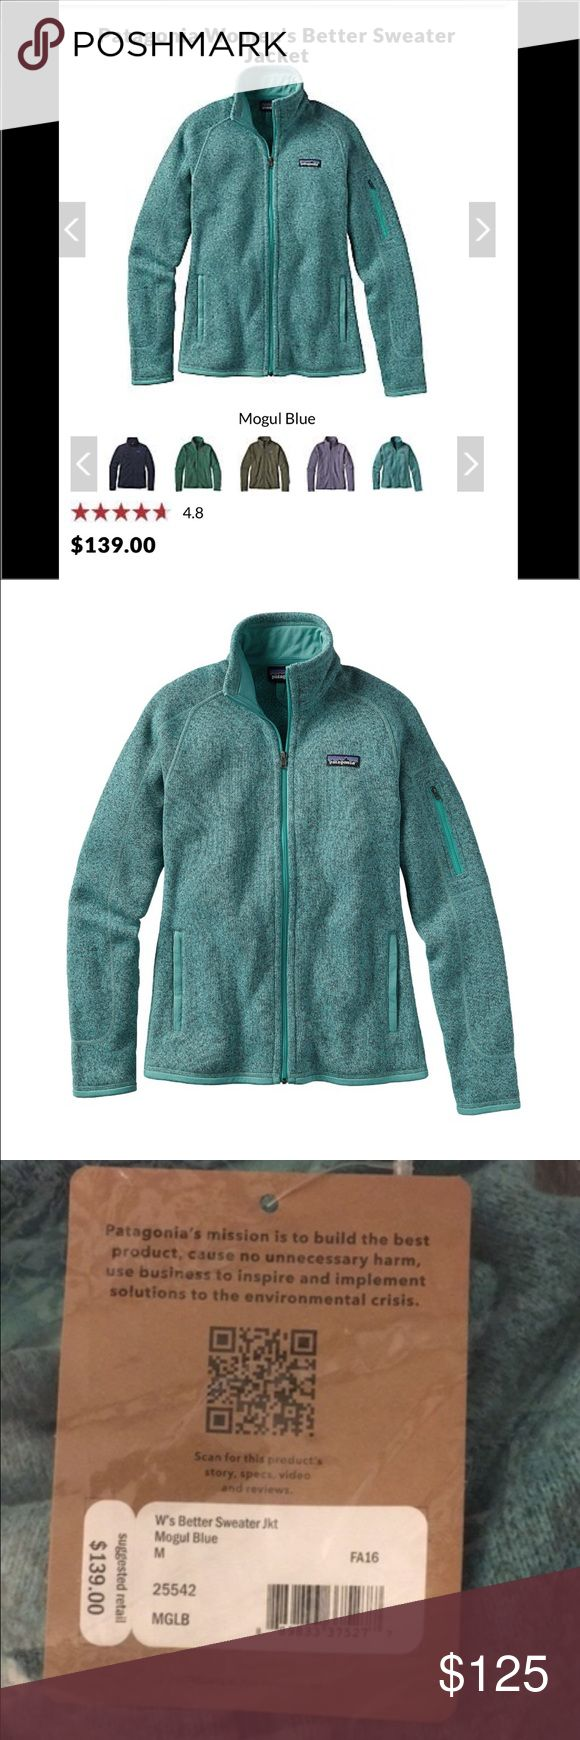 NWT Patagonia better sweater Women's size medium NWT better sweater in the color mogul blue! This retails for $139. I have a few of these and absolutely love them! If you have any questions don't hesitate! Willing to go cheaper if you want to bundle! Cheaper on Ⓜ️ and 🅿️🅿️! The grey sweater is not for sale it's just posted to show the details of the blue sweater! Thank you! Patagonia Sweaters